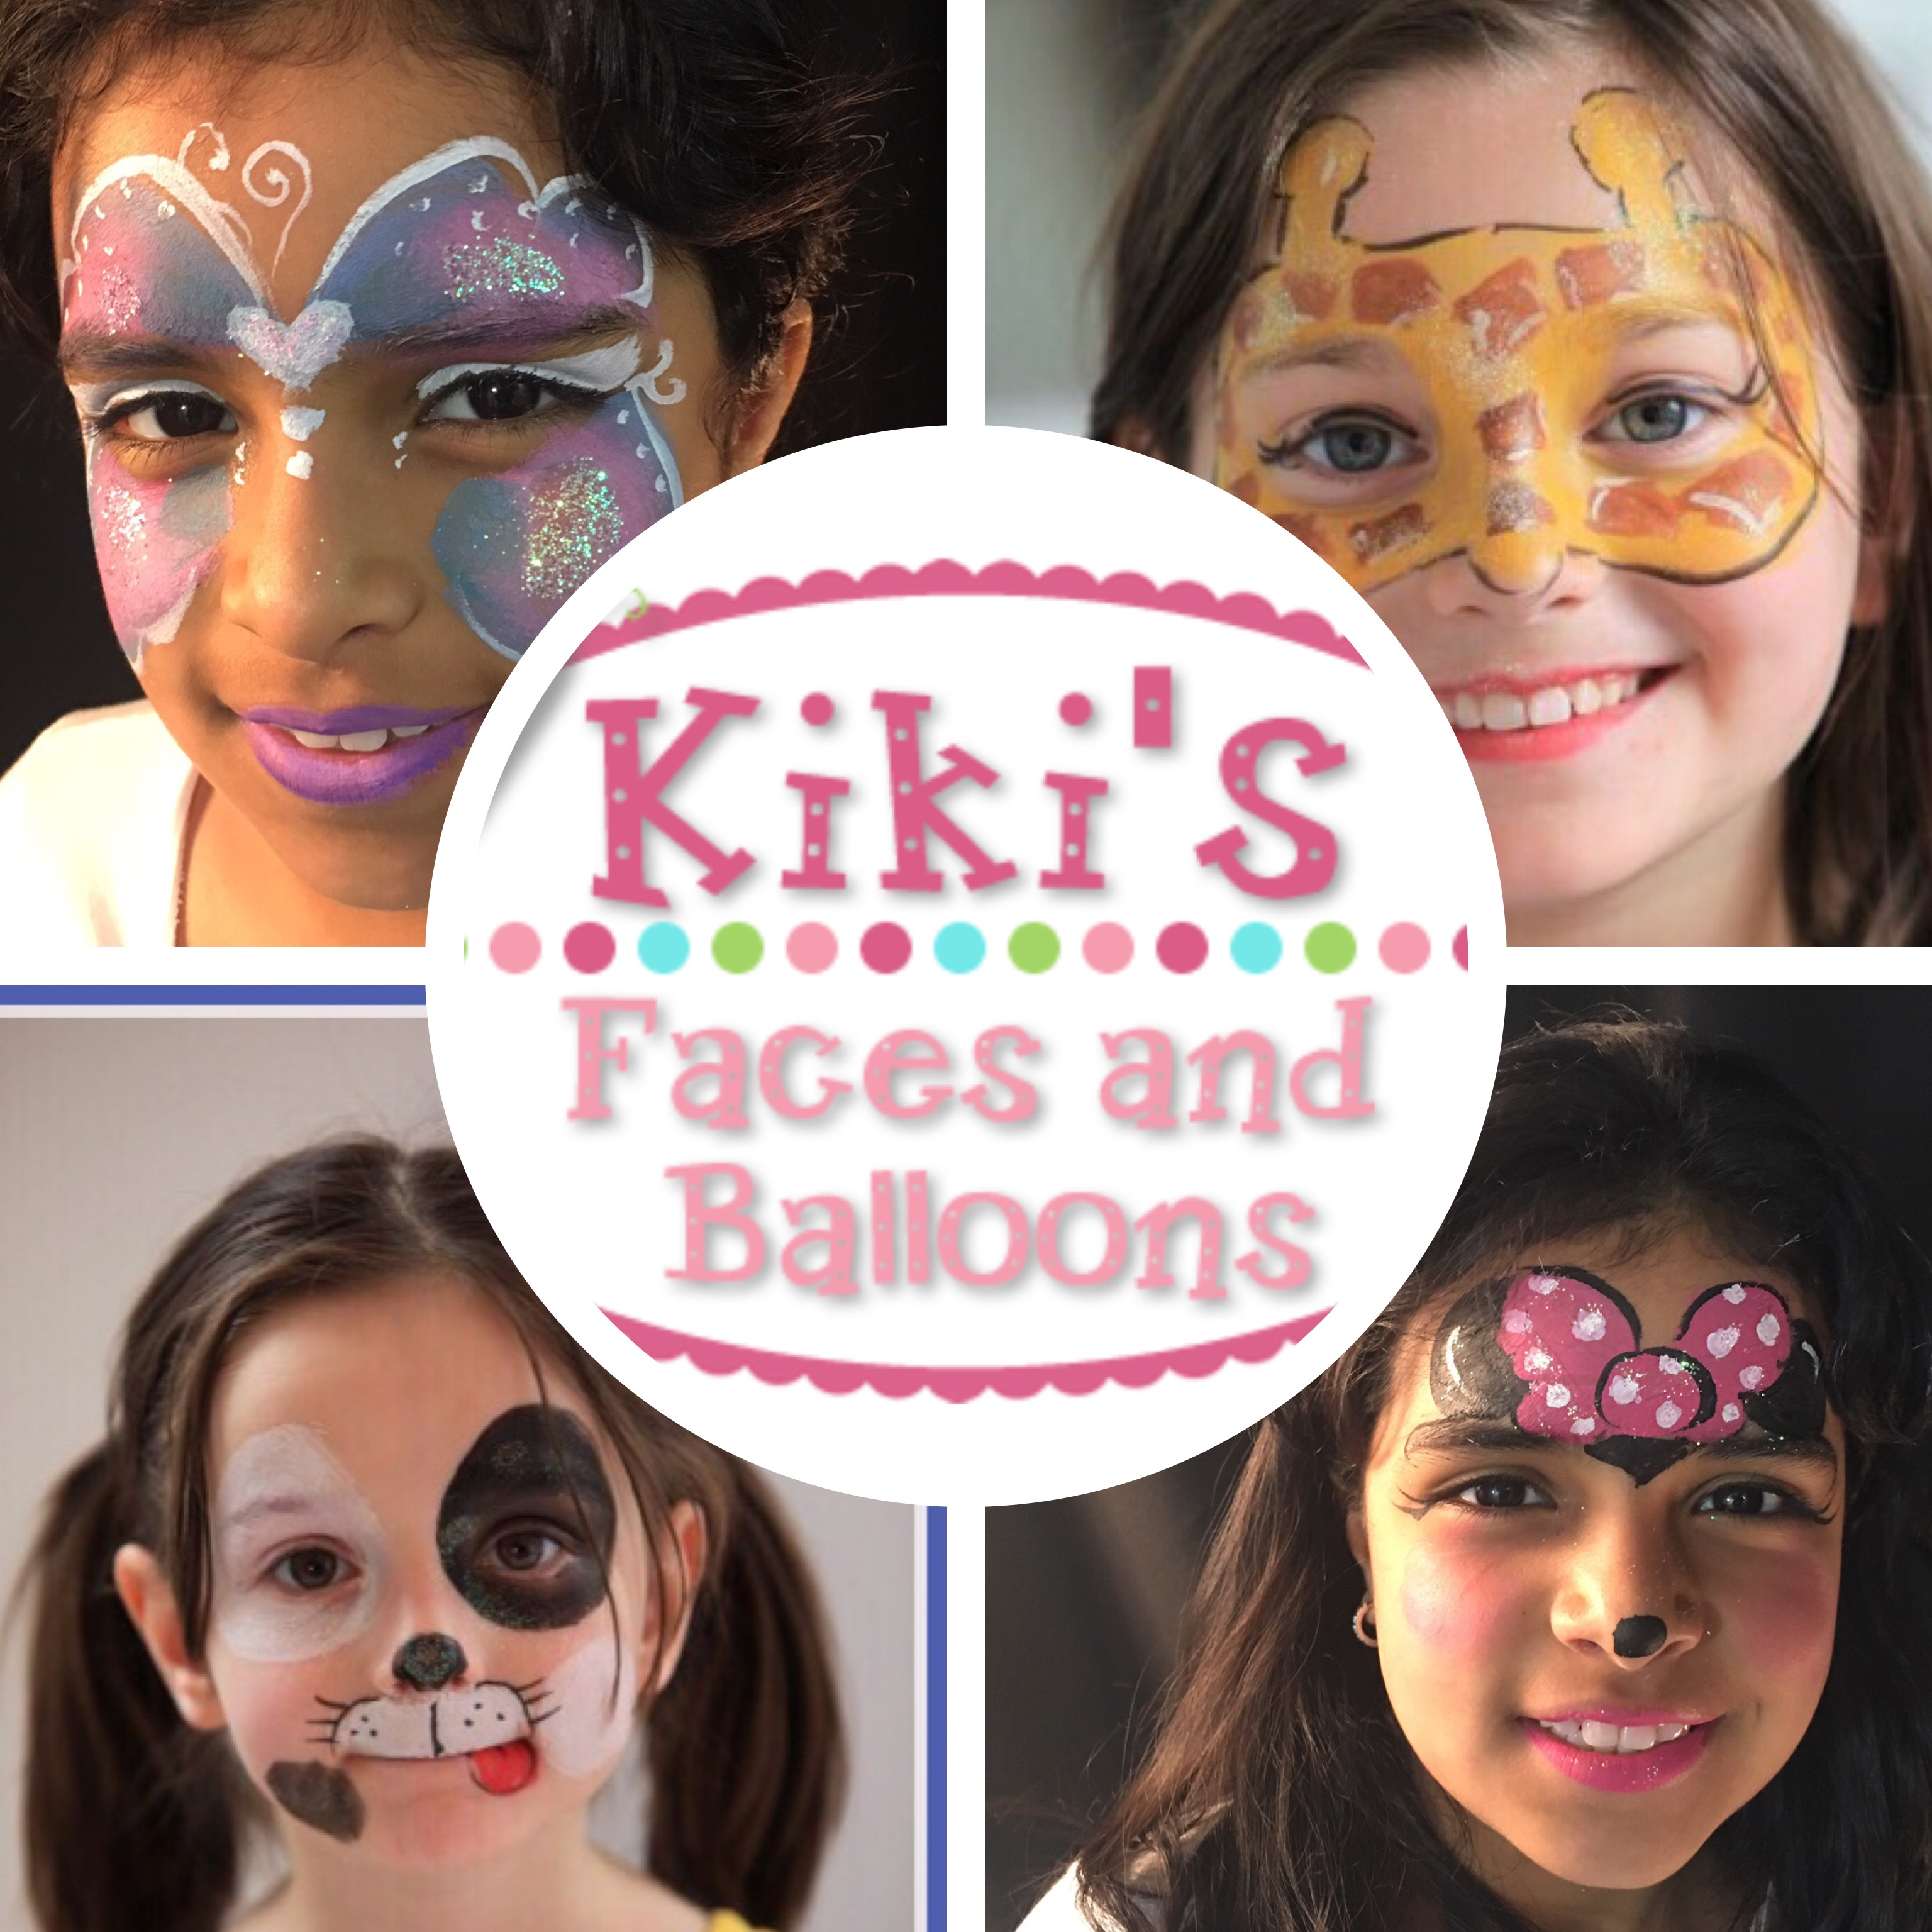 NYC Face Painting and Balloons Kids parties corporate events professional face painter and balloon artist NY princess face painter balloons